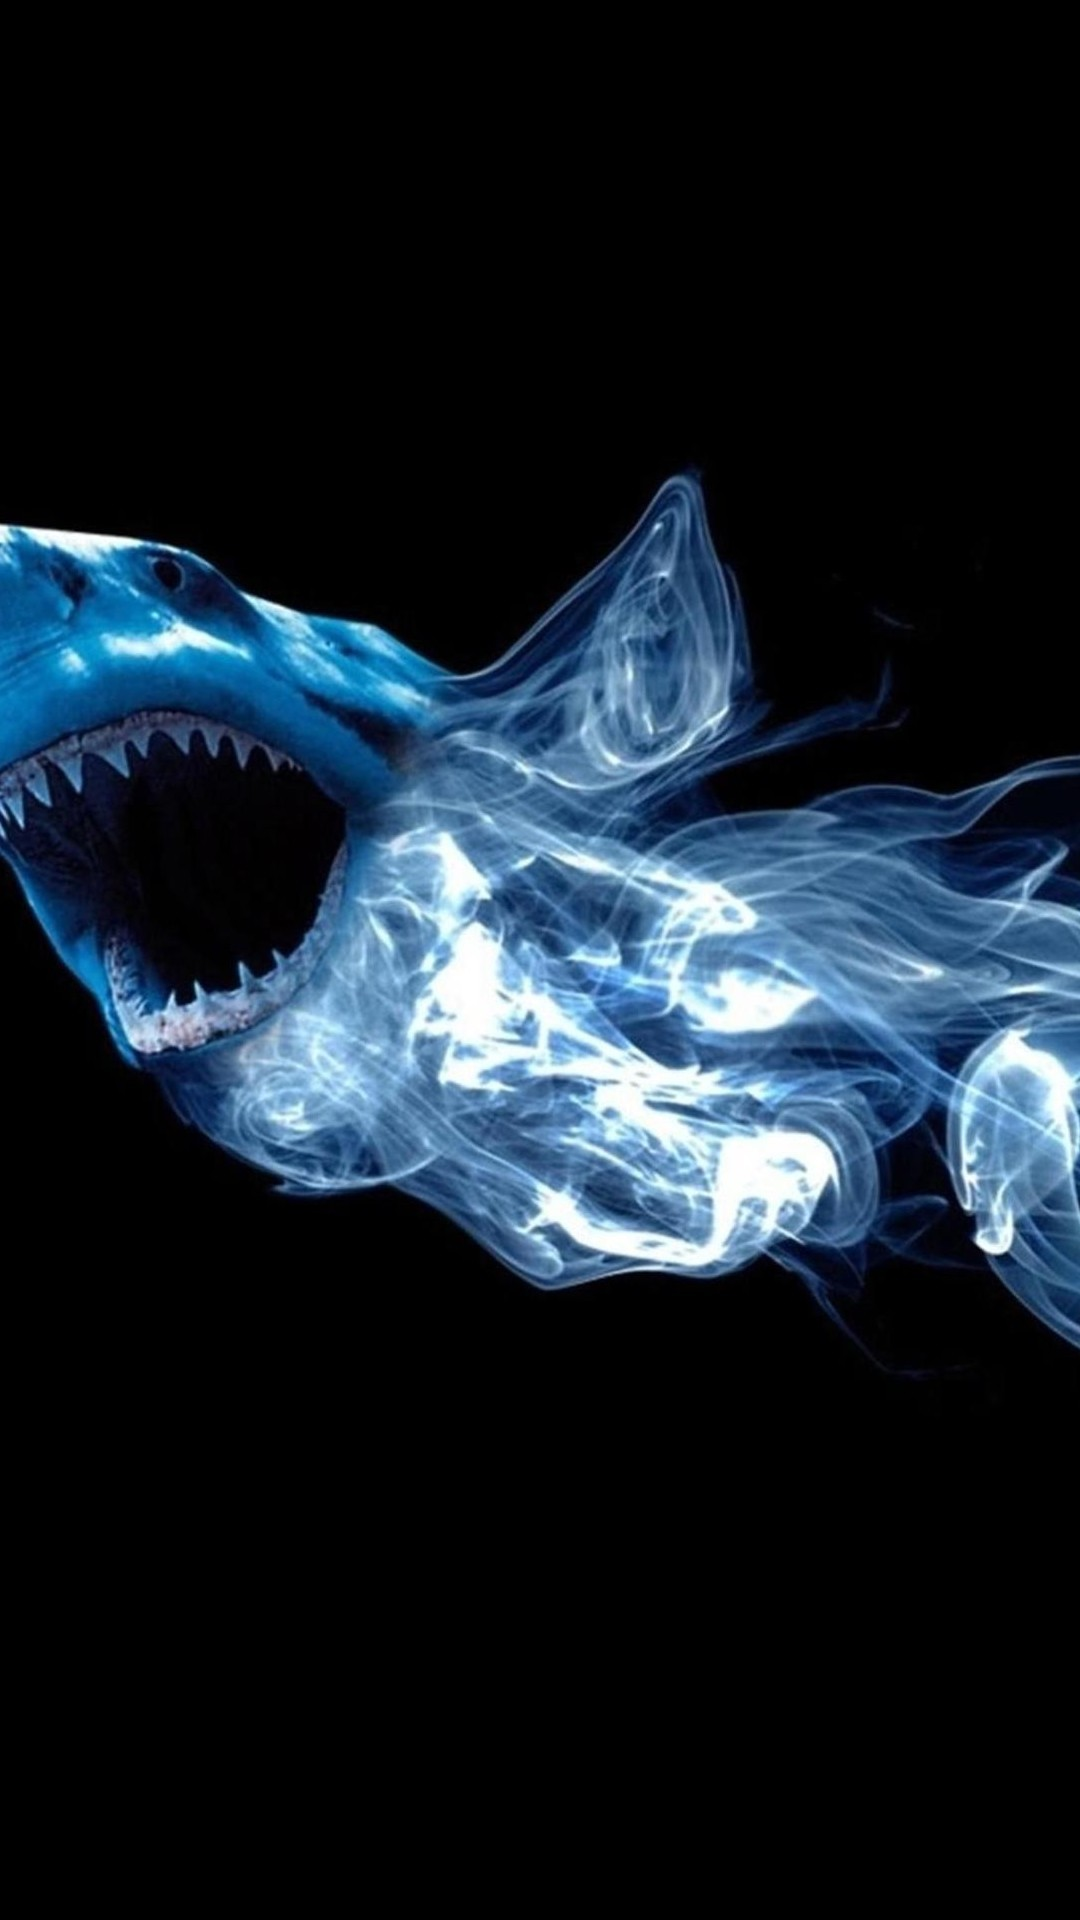 1080x1920 Abstract Shark Neon Light Smoke Android Wallpaper ...